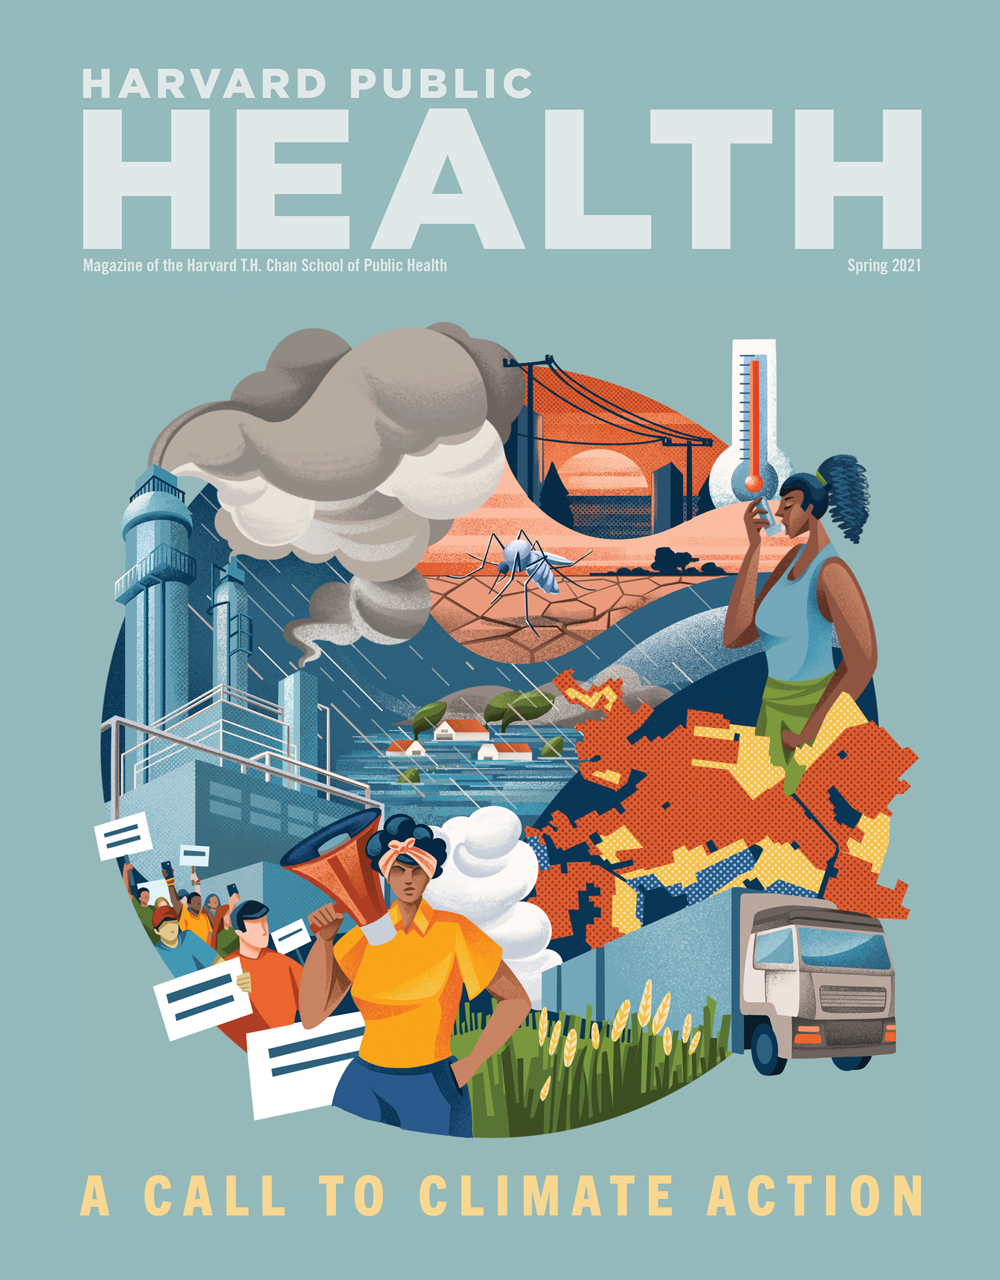 Dusty teal colored background with Colored-pencil digital illustration showing flooding, wind, rain, children eating at a dining table, a female exercising using an inhaler, electric cars, census tract data and charts, coal and wind energy. Headline reads: A Call to Climate Action